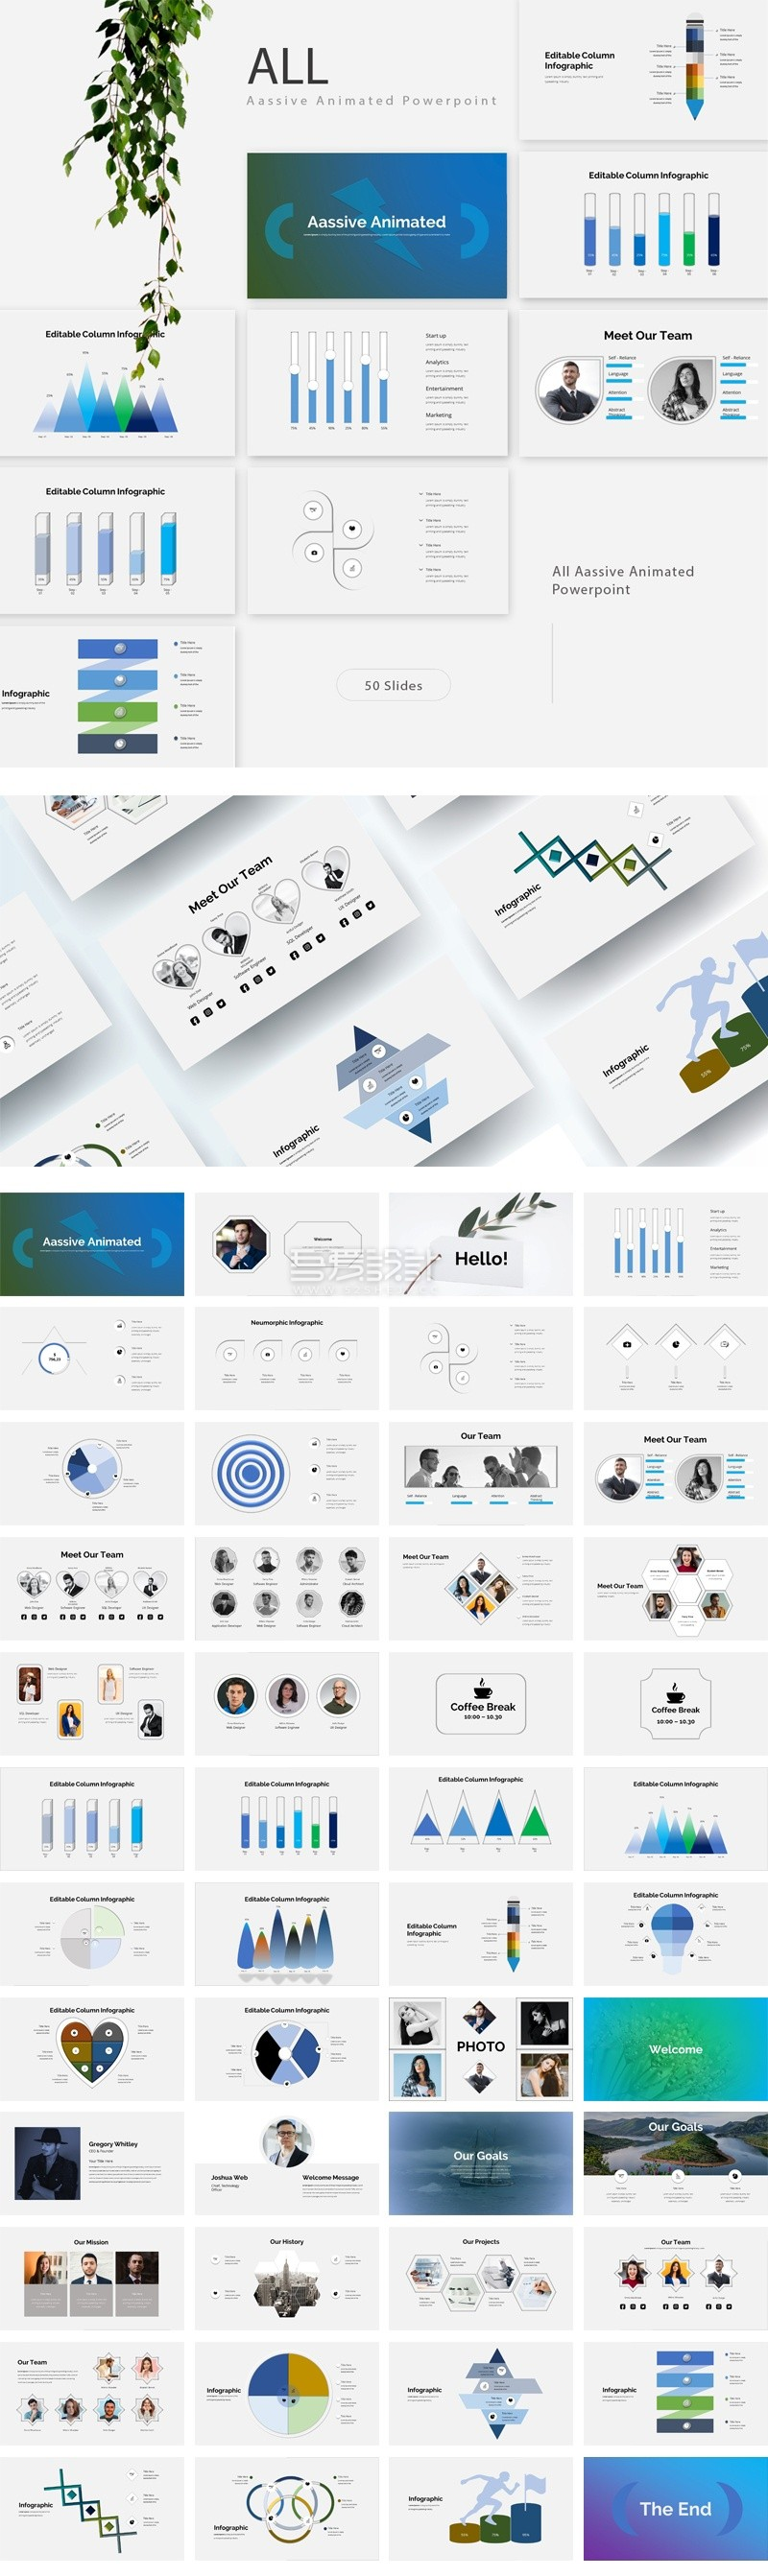 aassive-animated-powerpoint-presentationtemplate-1001_preview